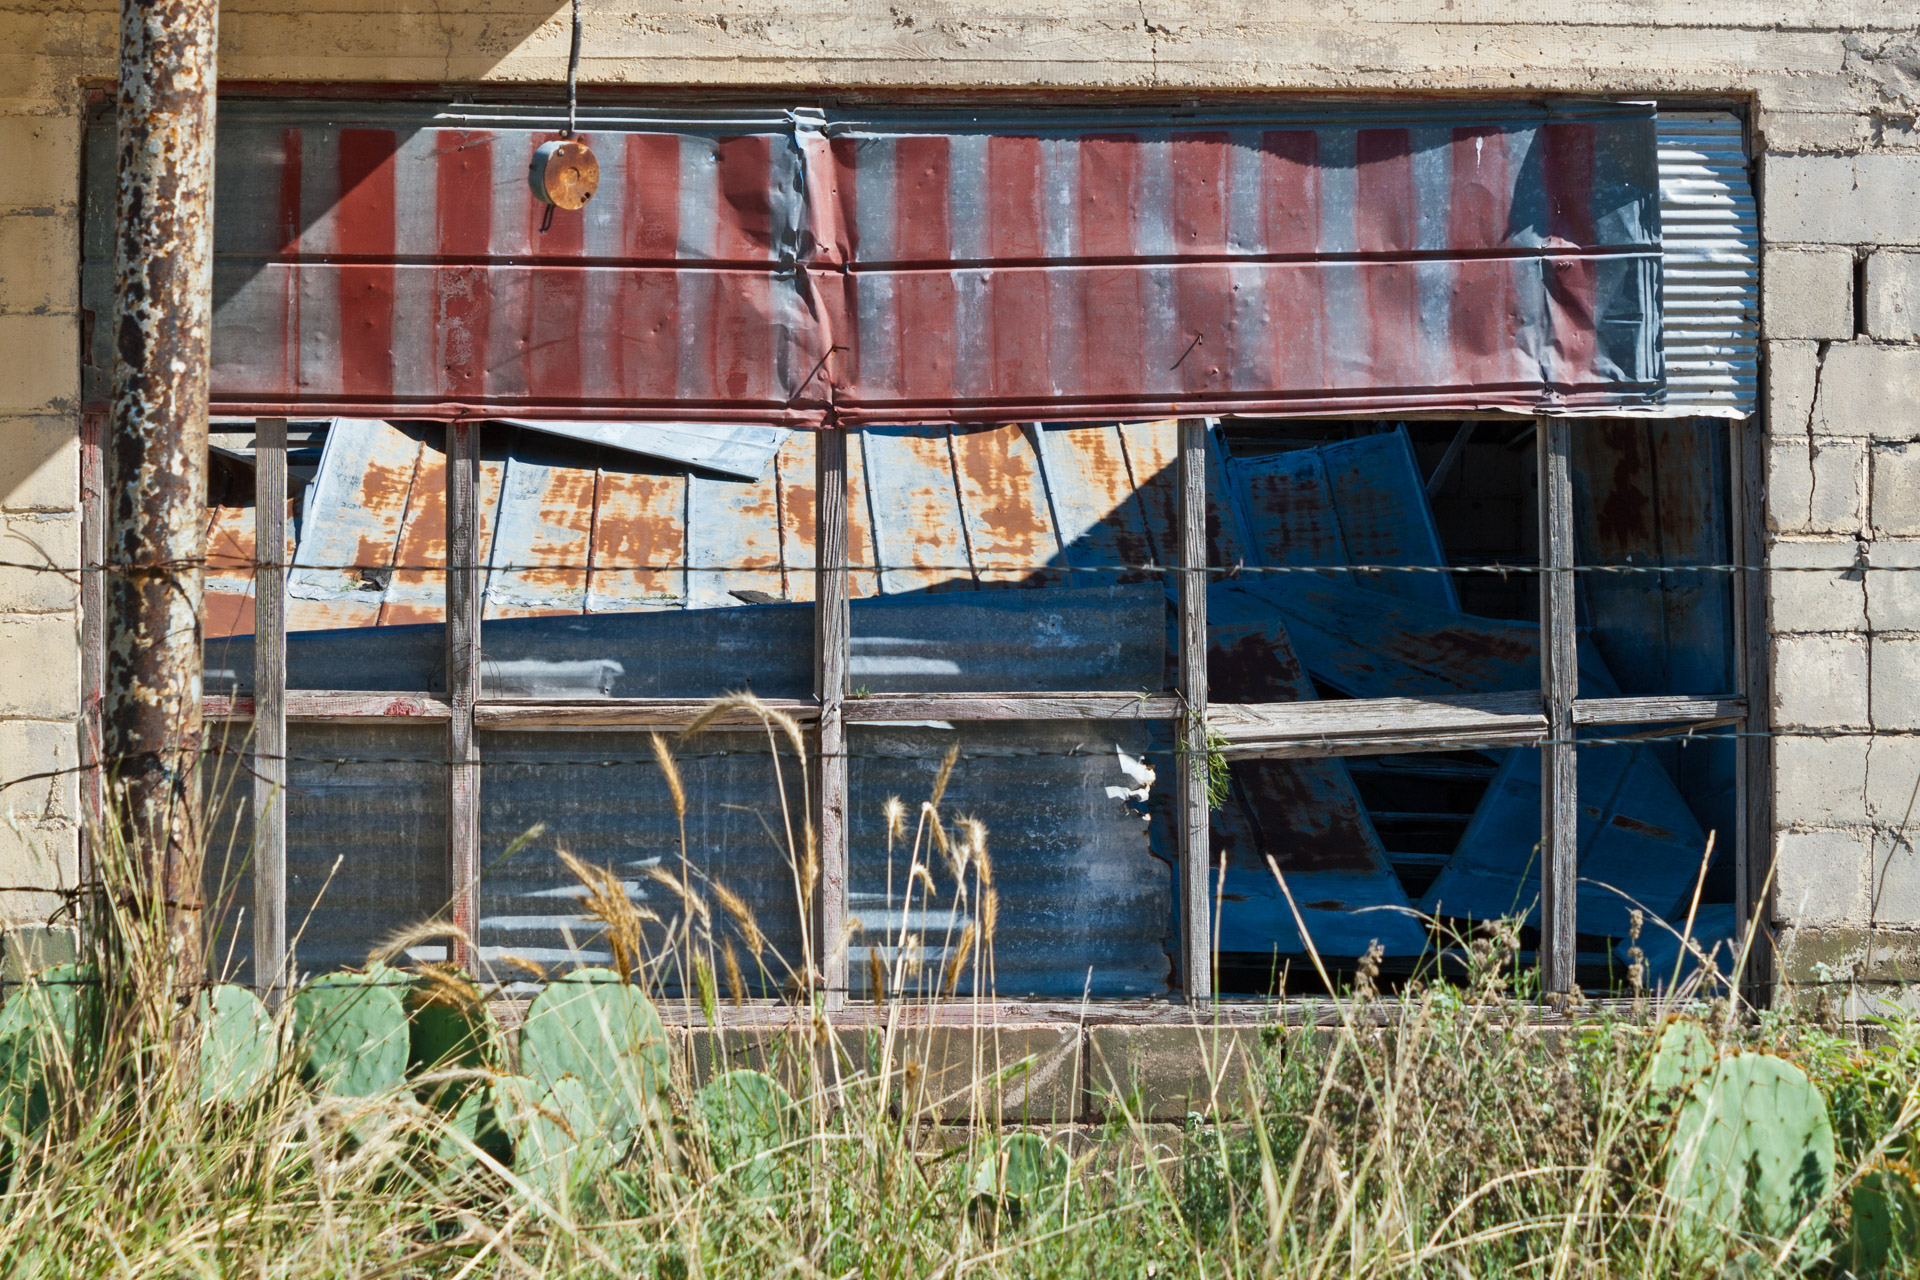 Talpa, Texas - The Falling Tin Store (window)